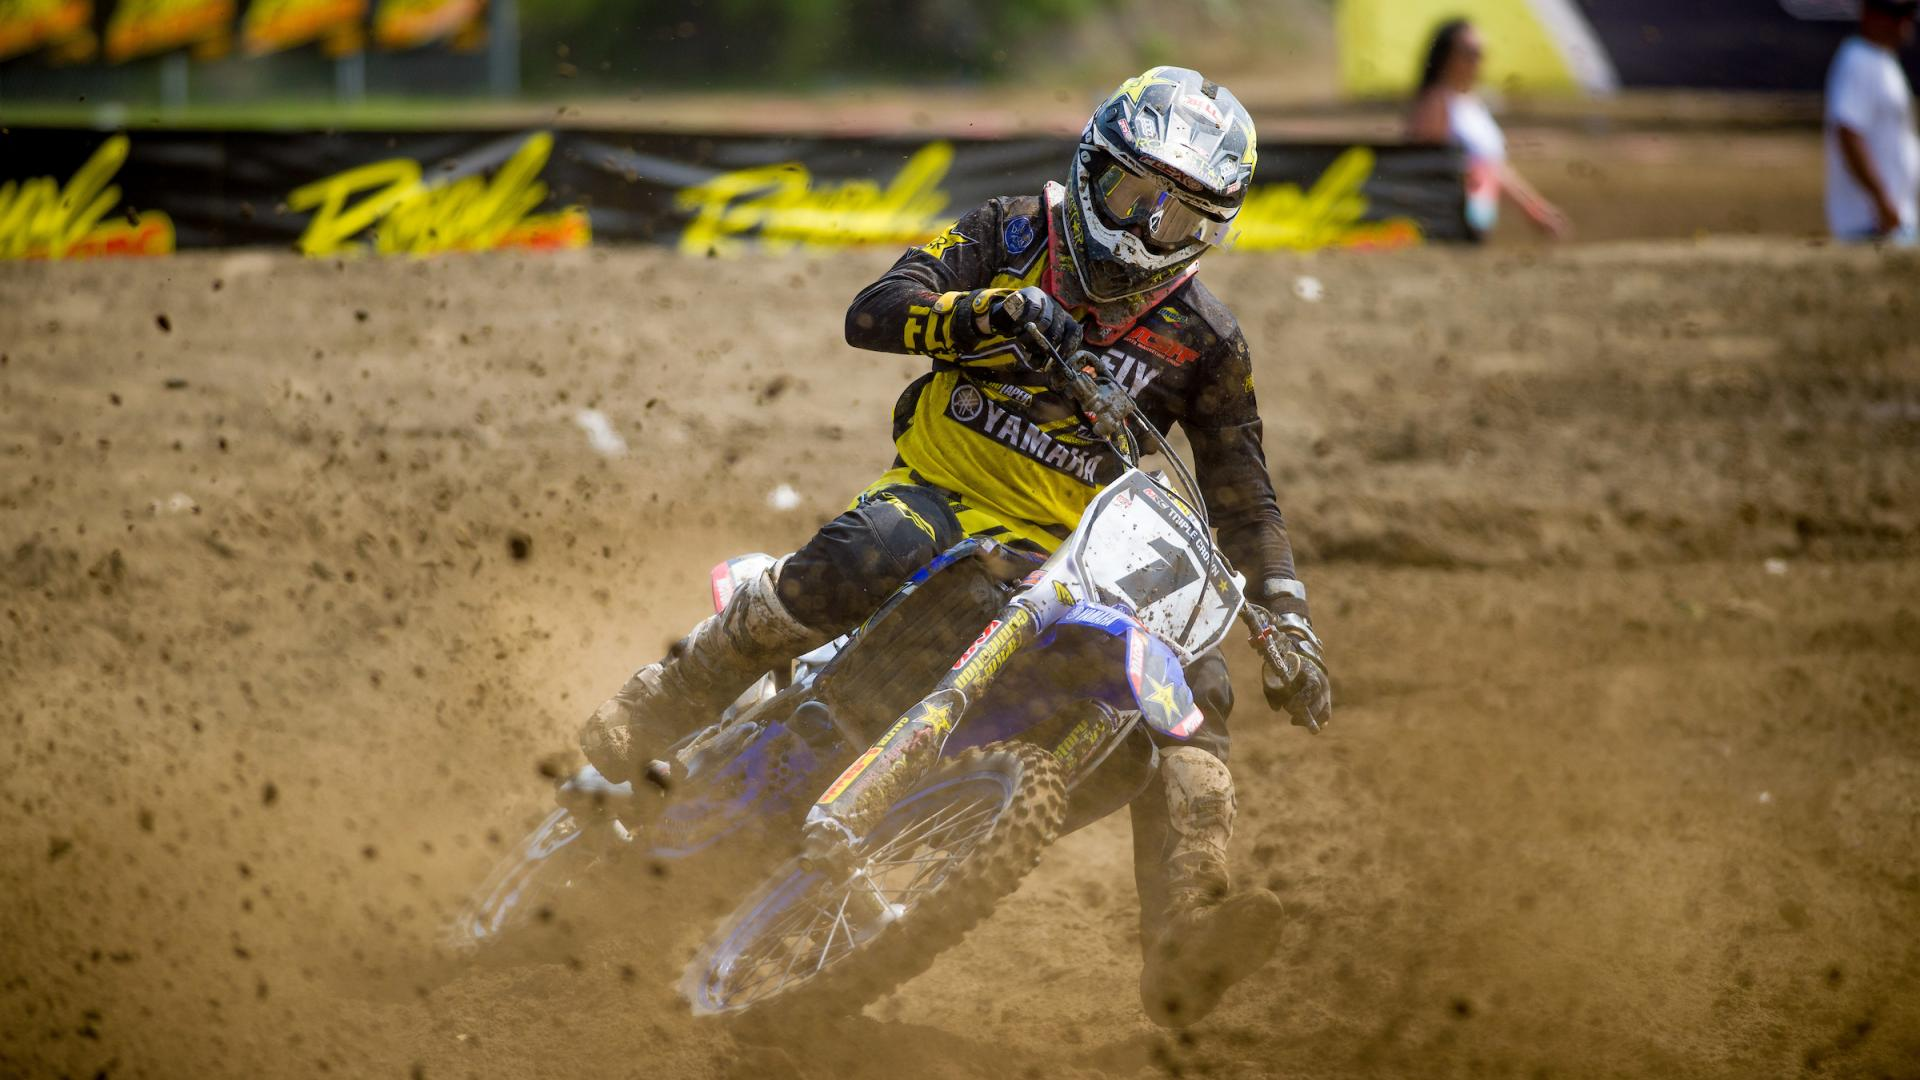 An up and down weekend for Rockstar Energy OTSFF Yamaha in Deschambault